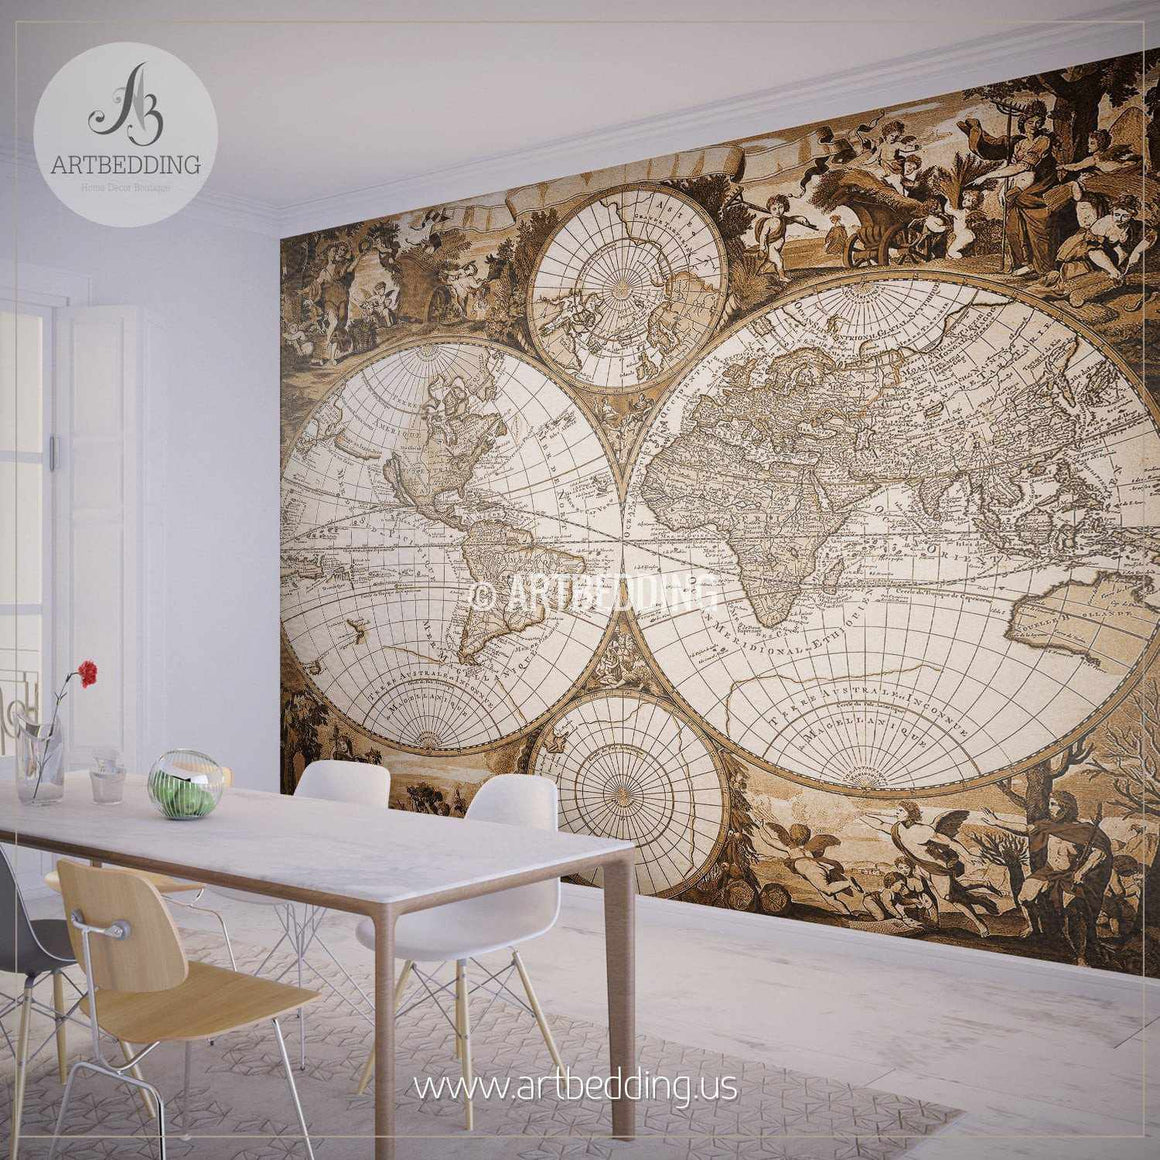 Historic Hemisphere Map Wall Mural, Self Adhesive Peel & Stick Photo Mural, Atlas wall mural, mural home decor wall mural